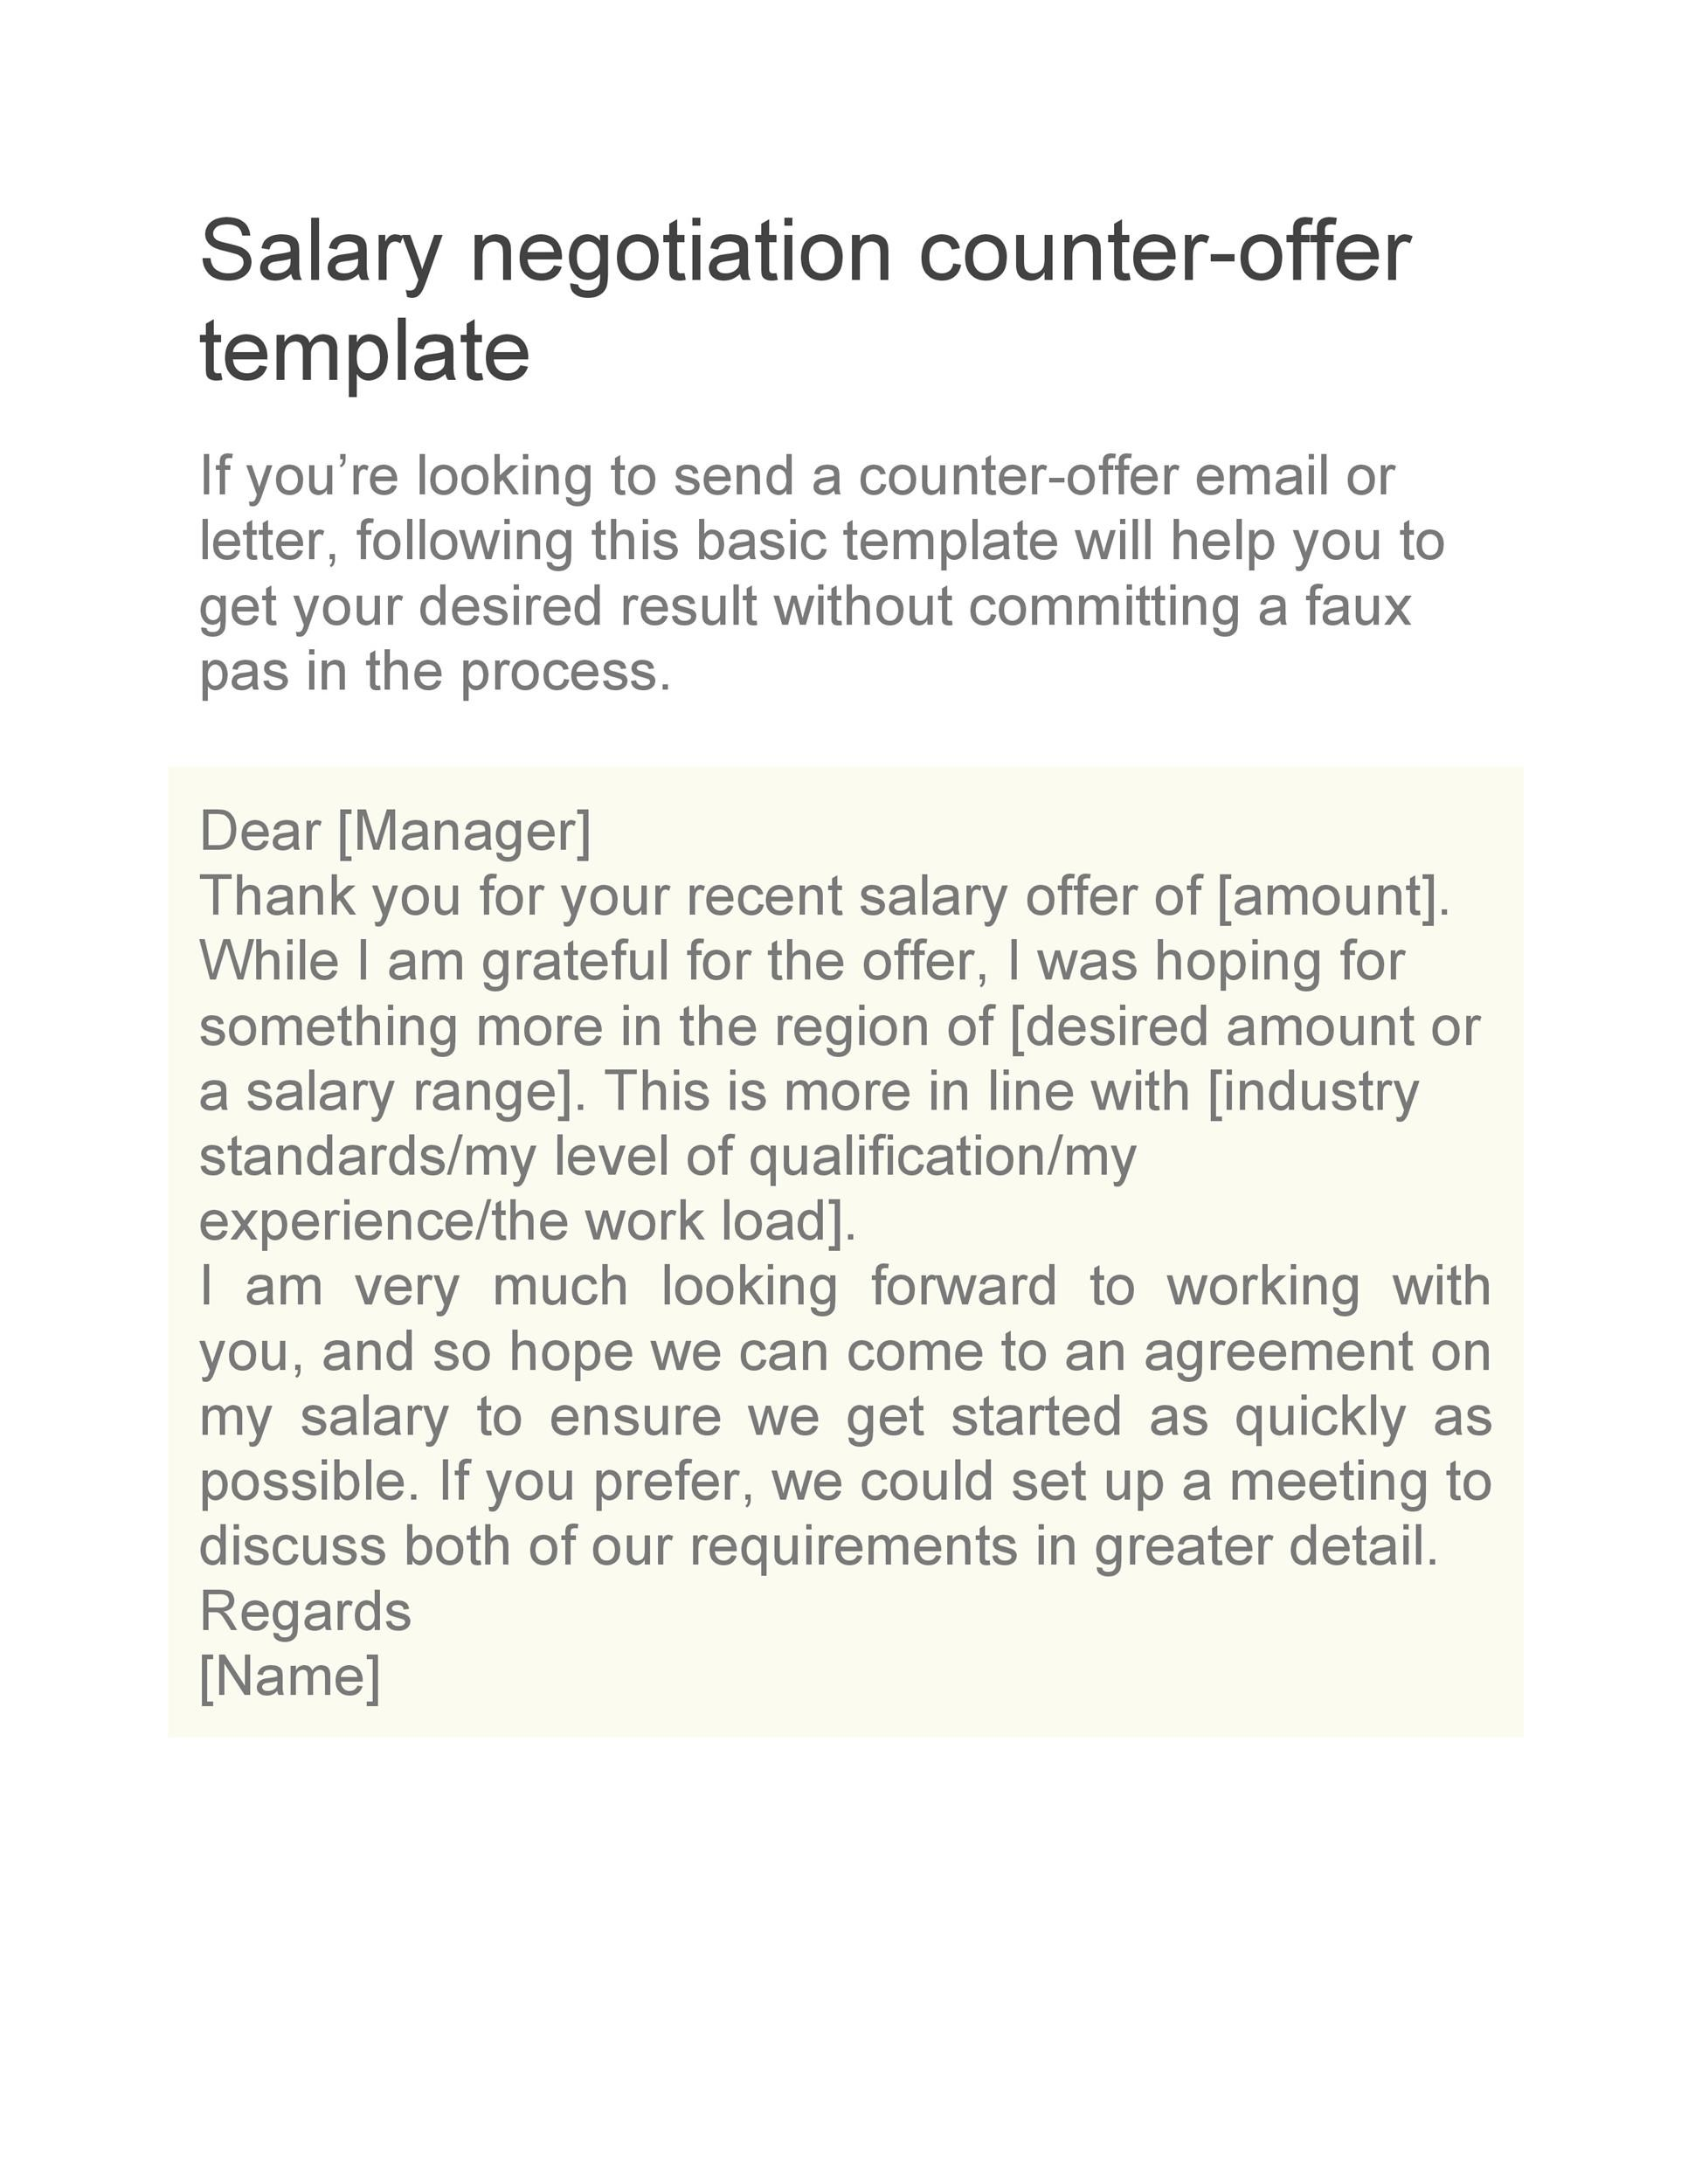 49 Best Salary Negotiation Letters, Emails  Tips ᐅ Template Lab